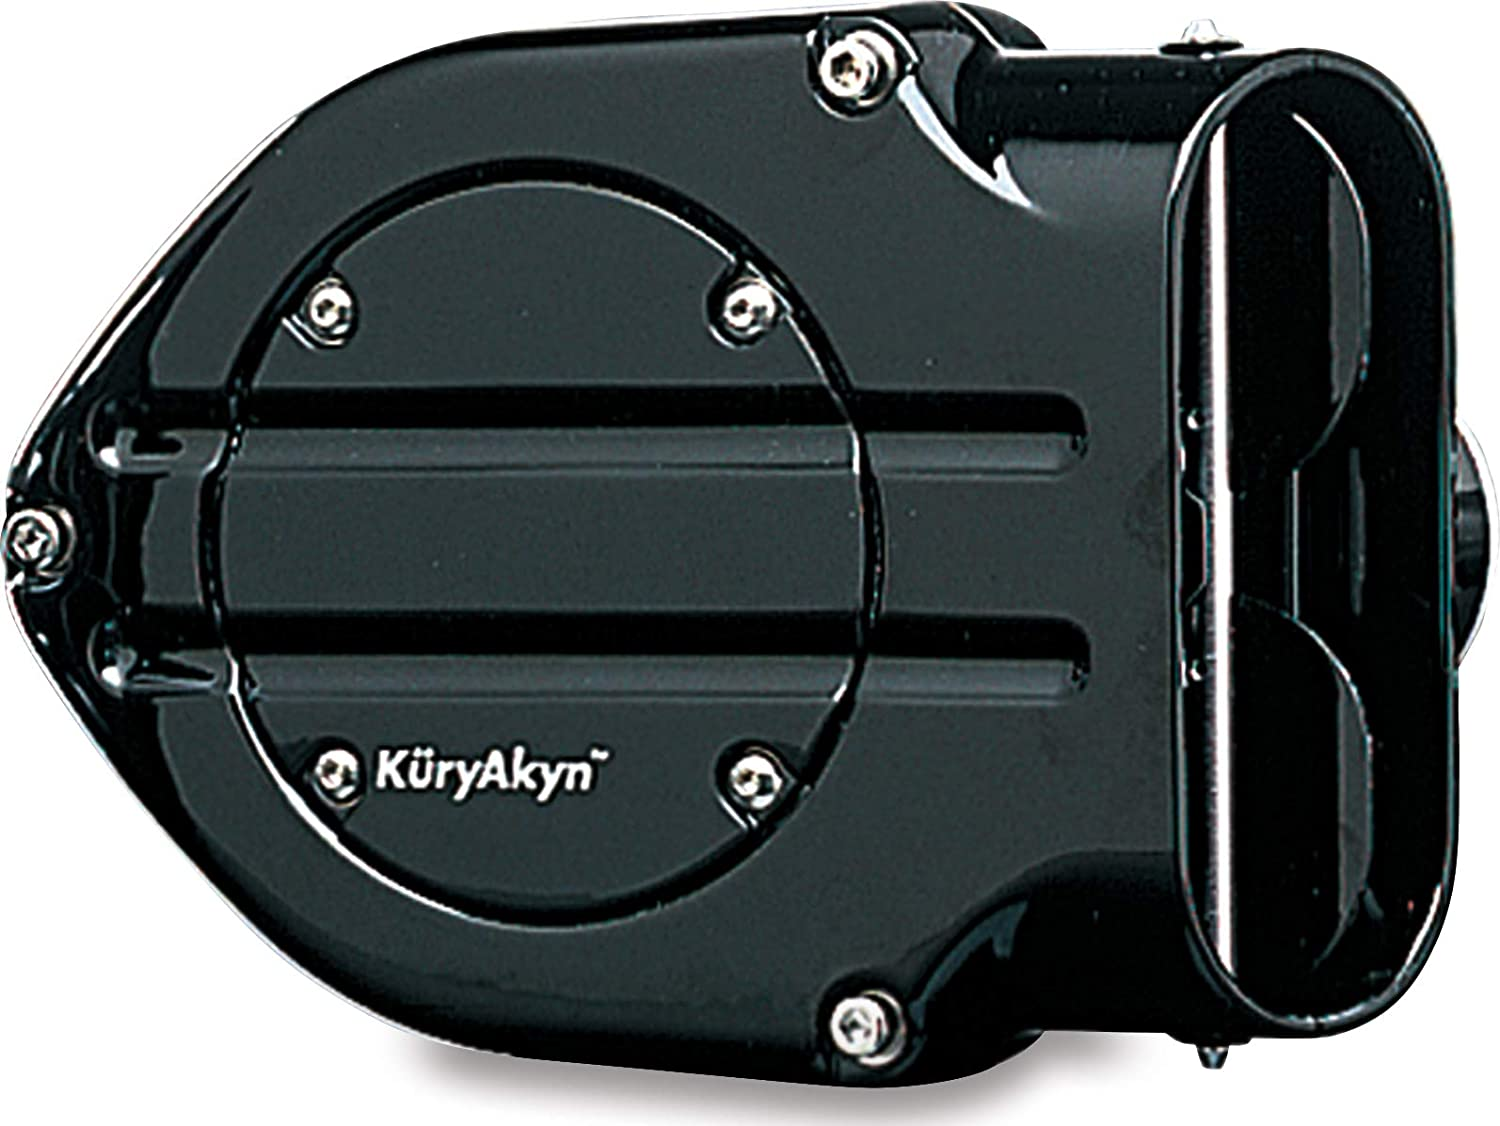 Kuryakyn 9874 Hypercharger Air Cleaner/Filter with Blood Groove Design Trap Door for 2007-19 Harley-Davidson Motorcycles, Gloss Black